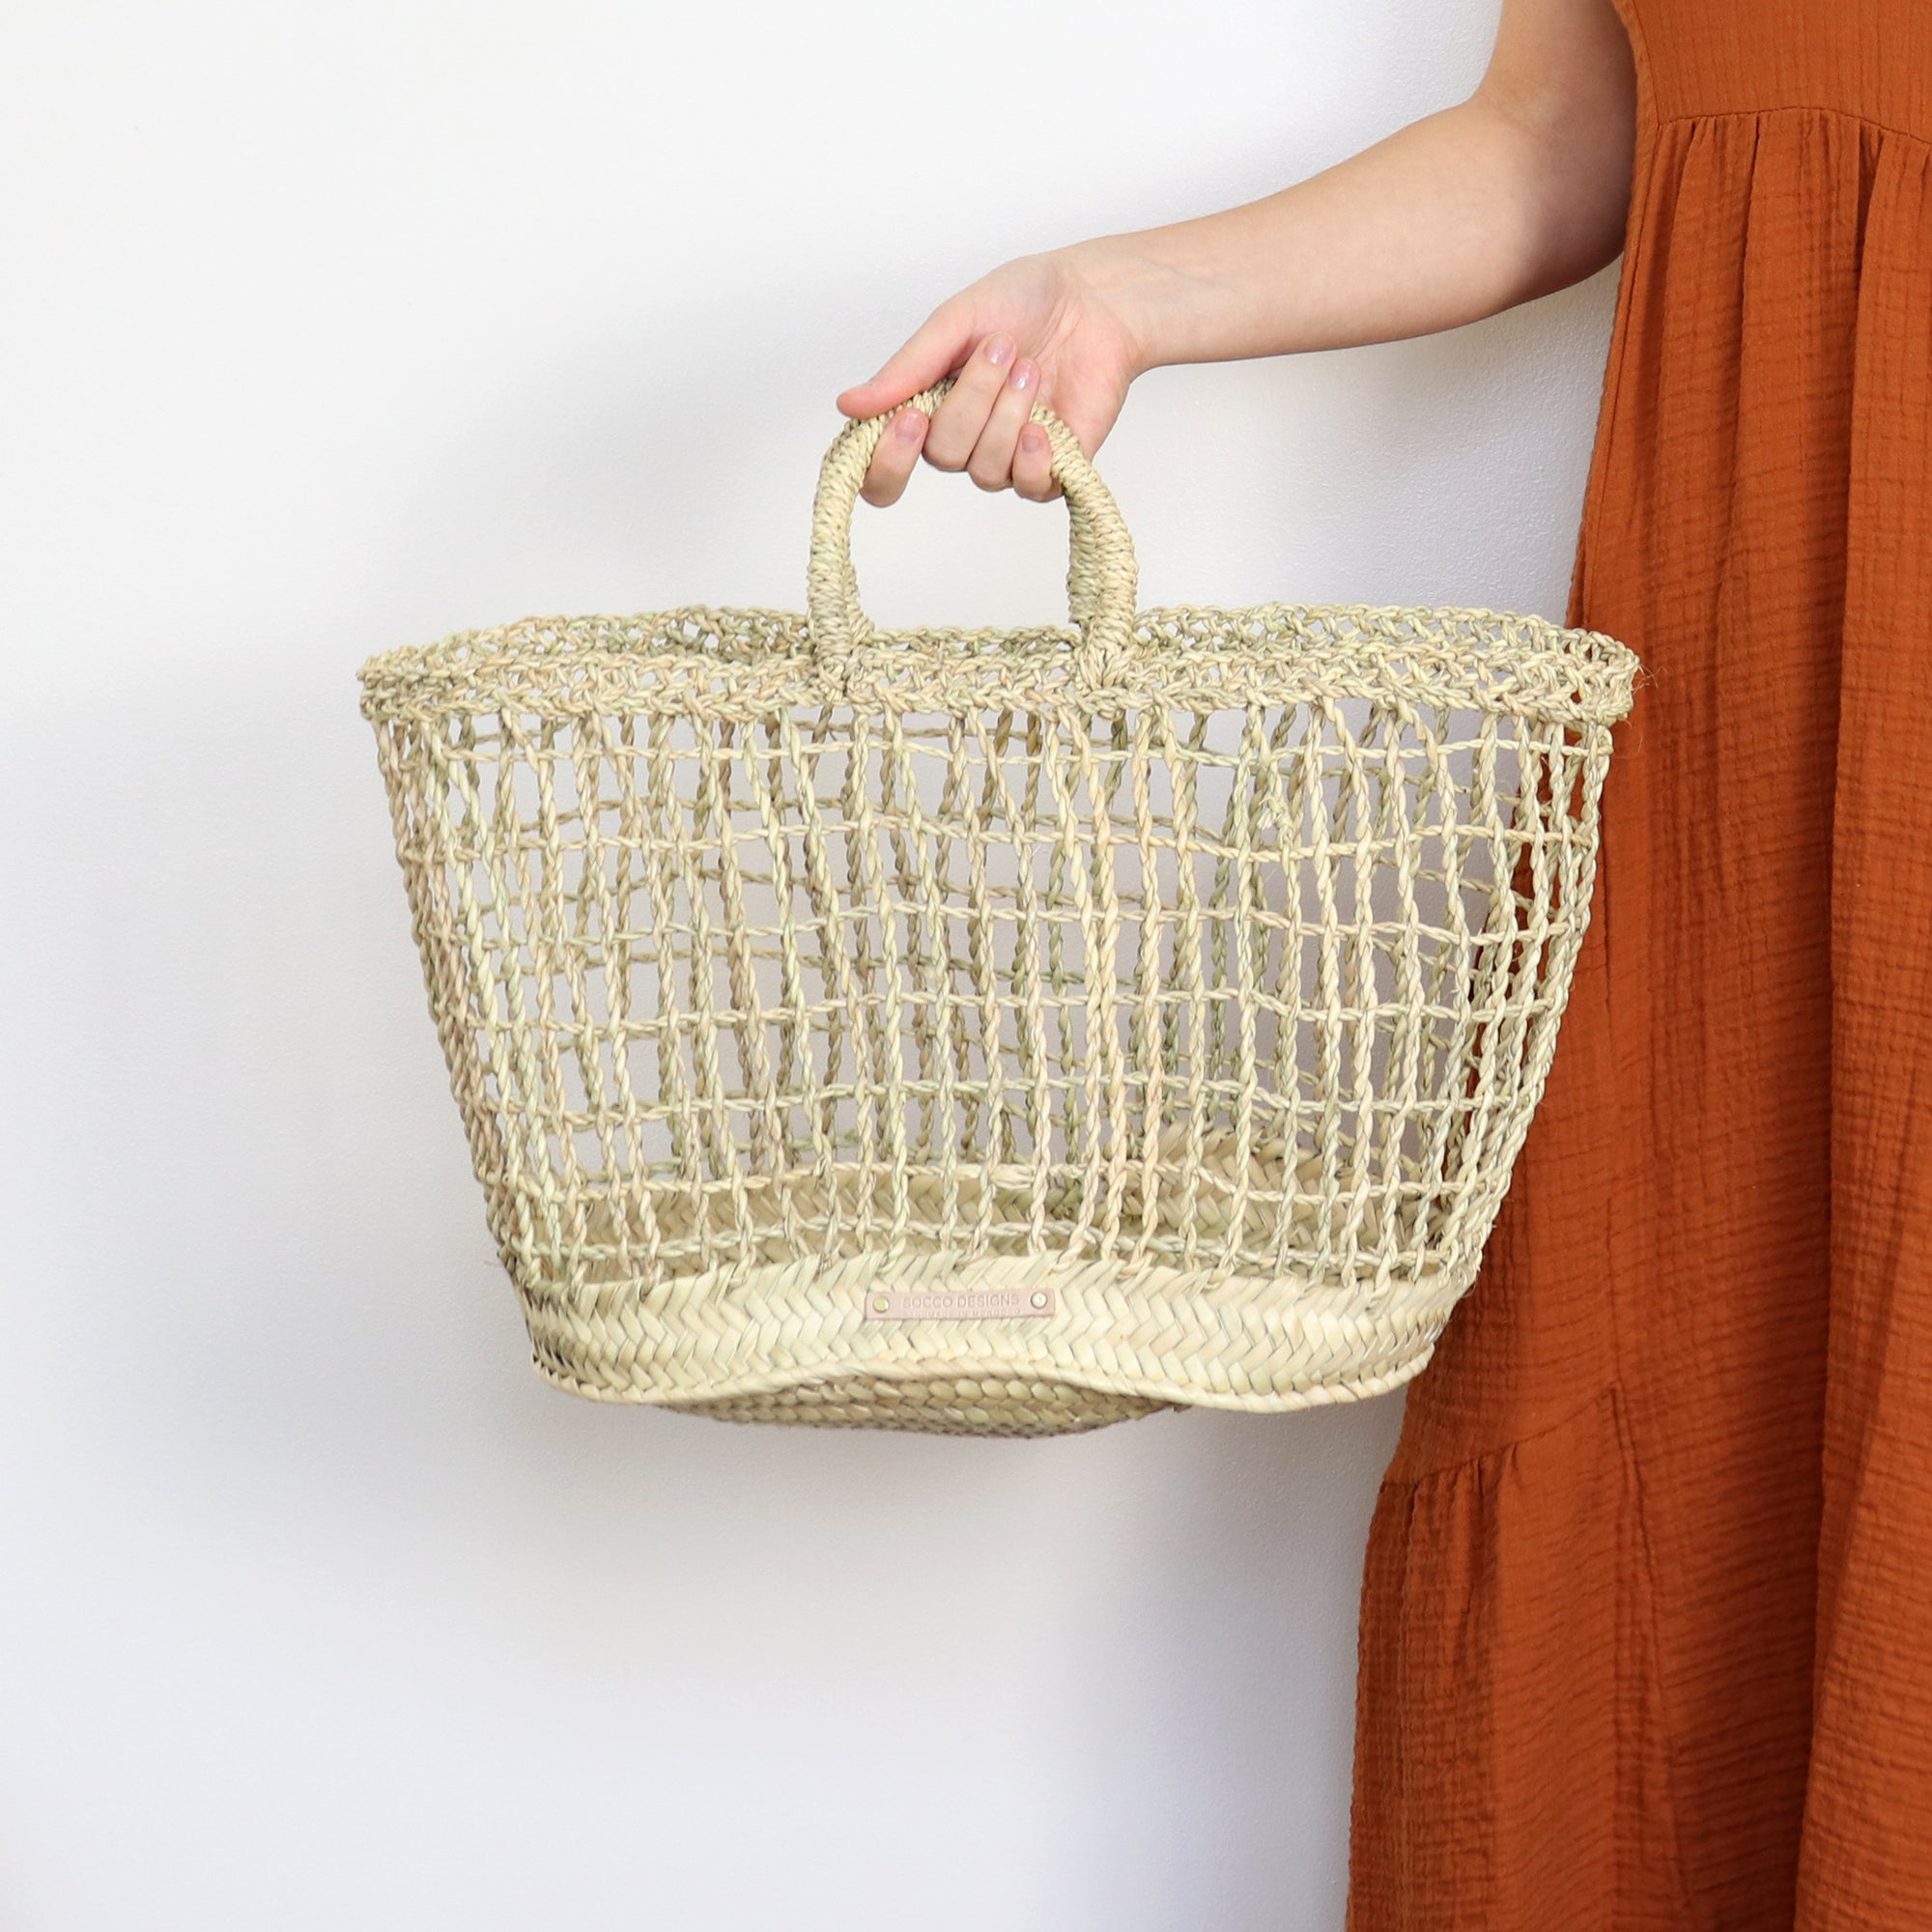 Medium open weave straw basket